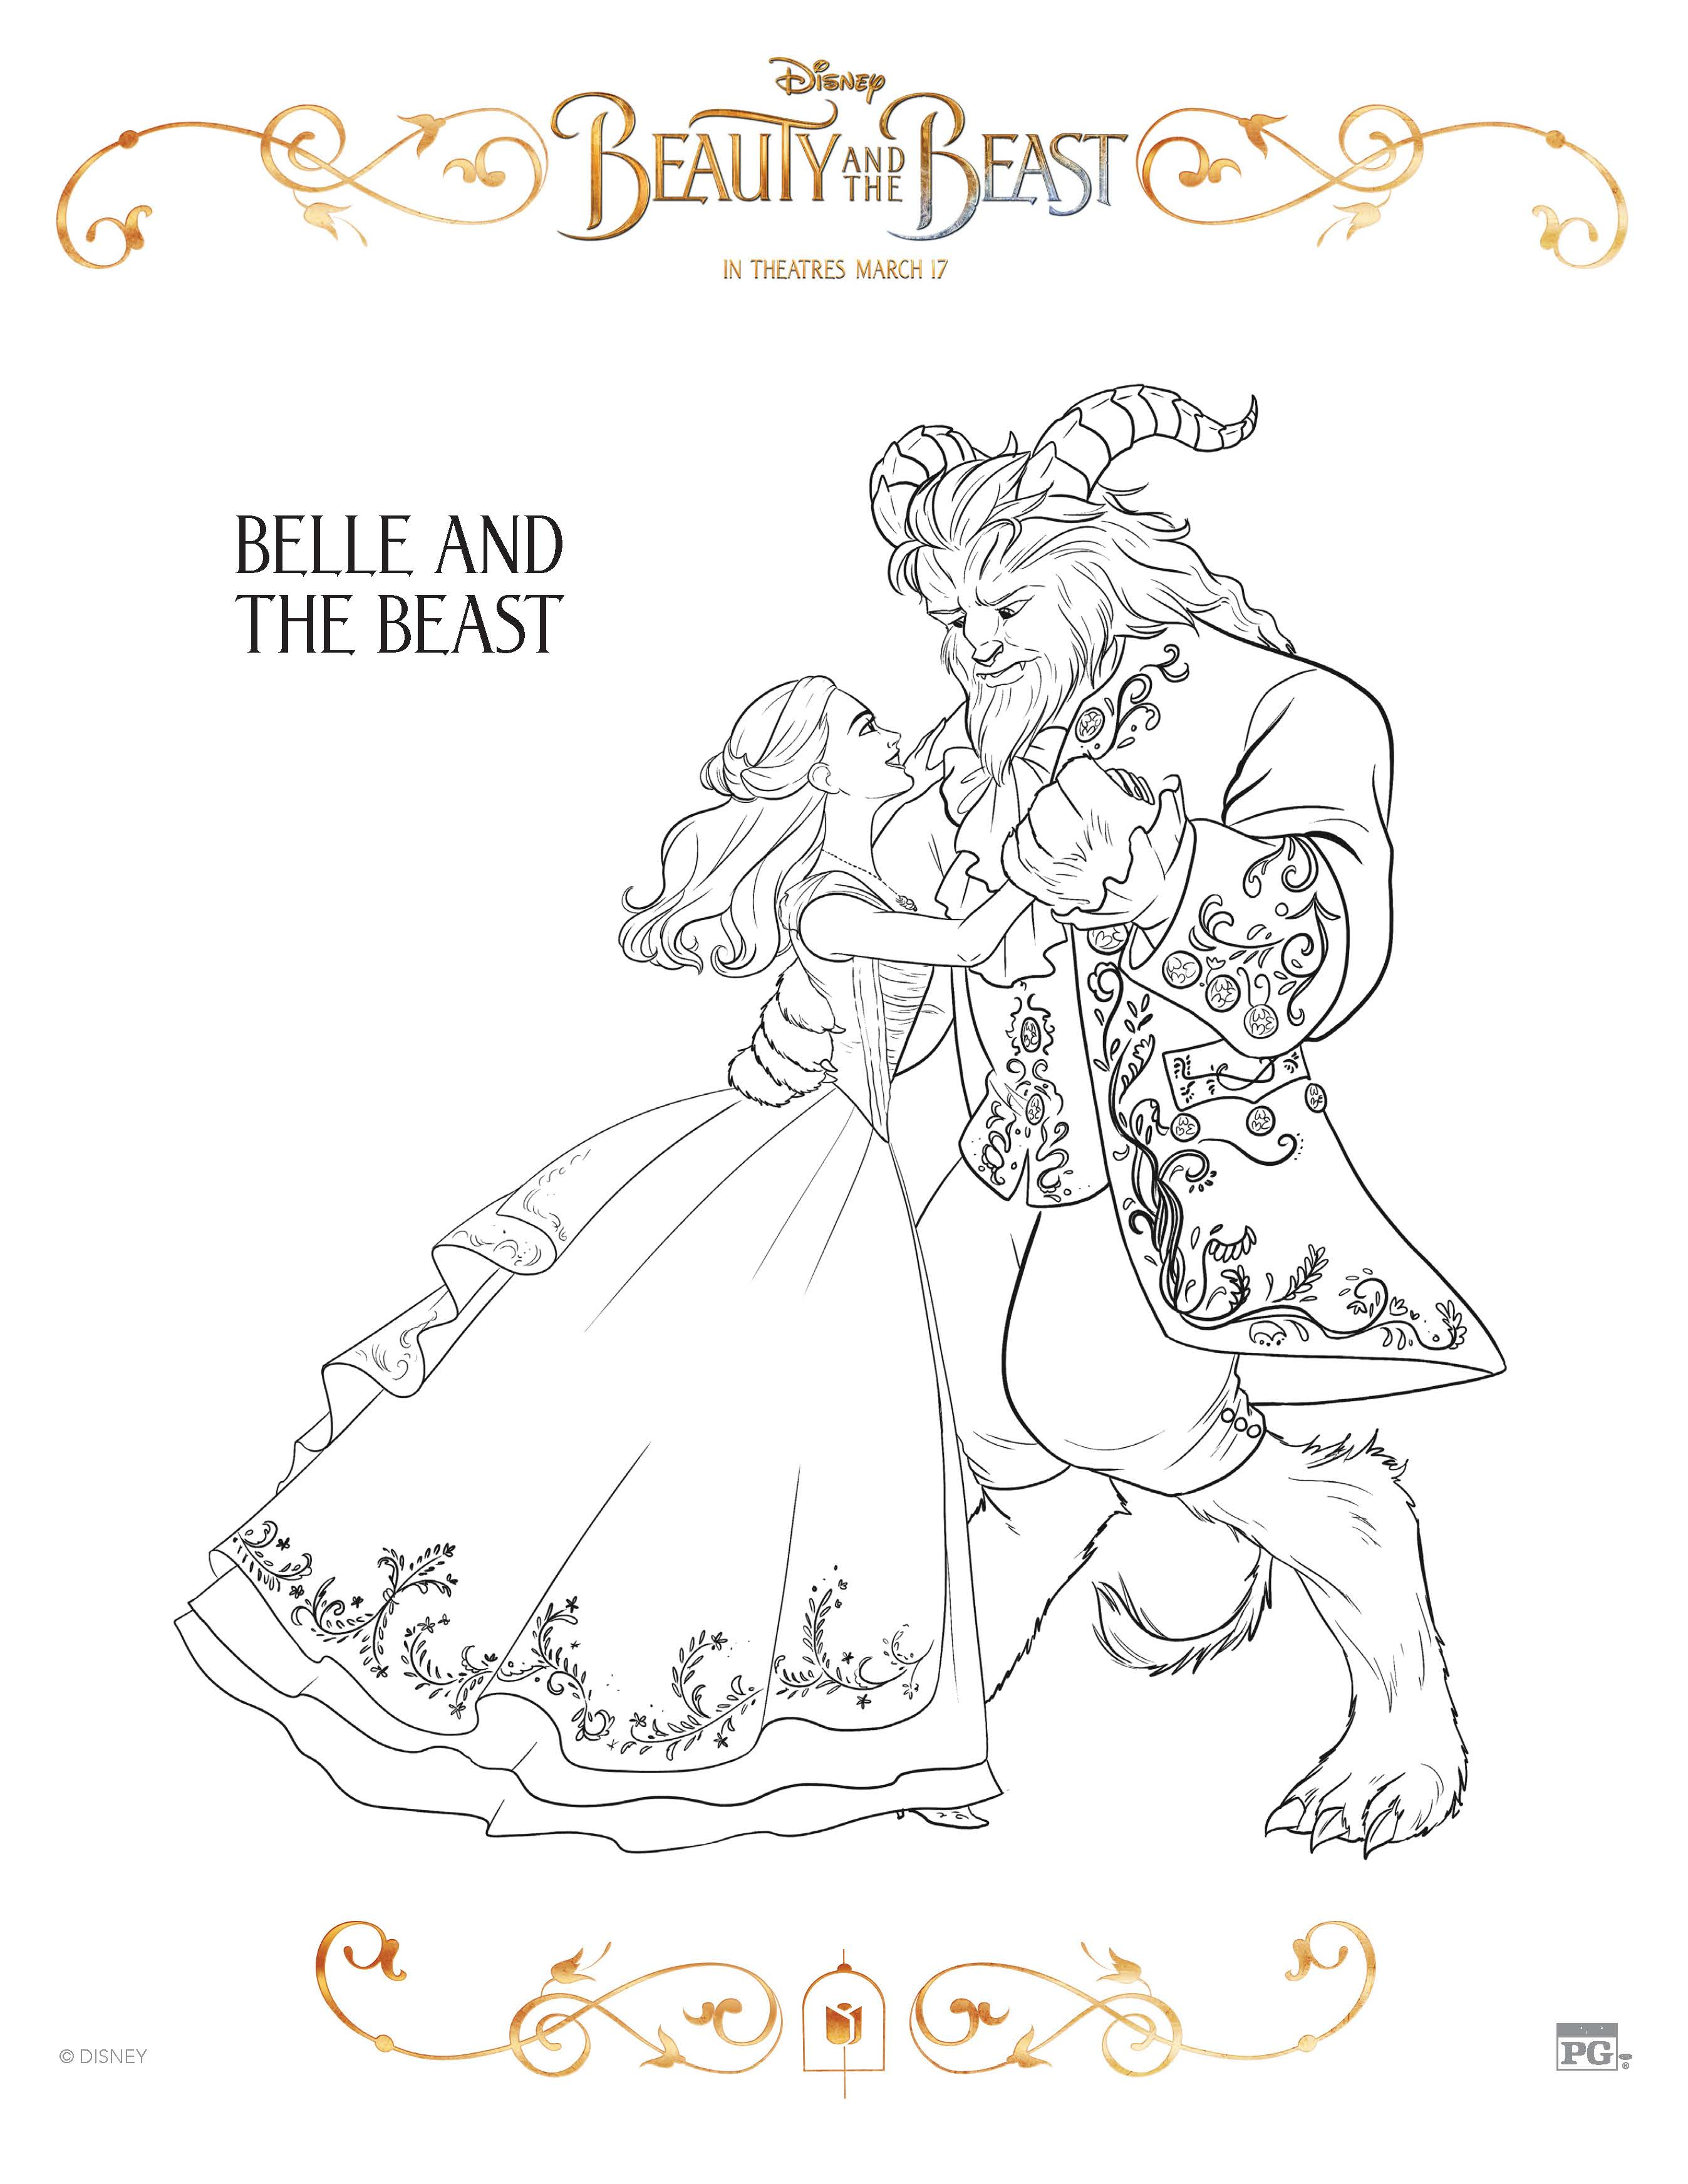 image relating to Beauty and the Beast Printable Coloring Pages identified as 10 Attractiveness and the Beast Totally free Printable Coloring Web pages